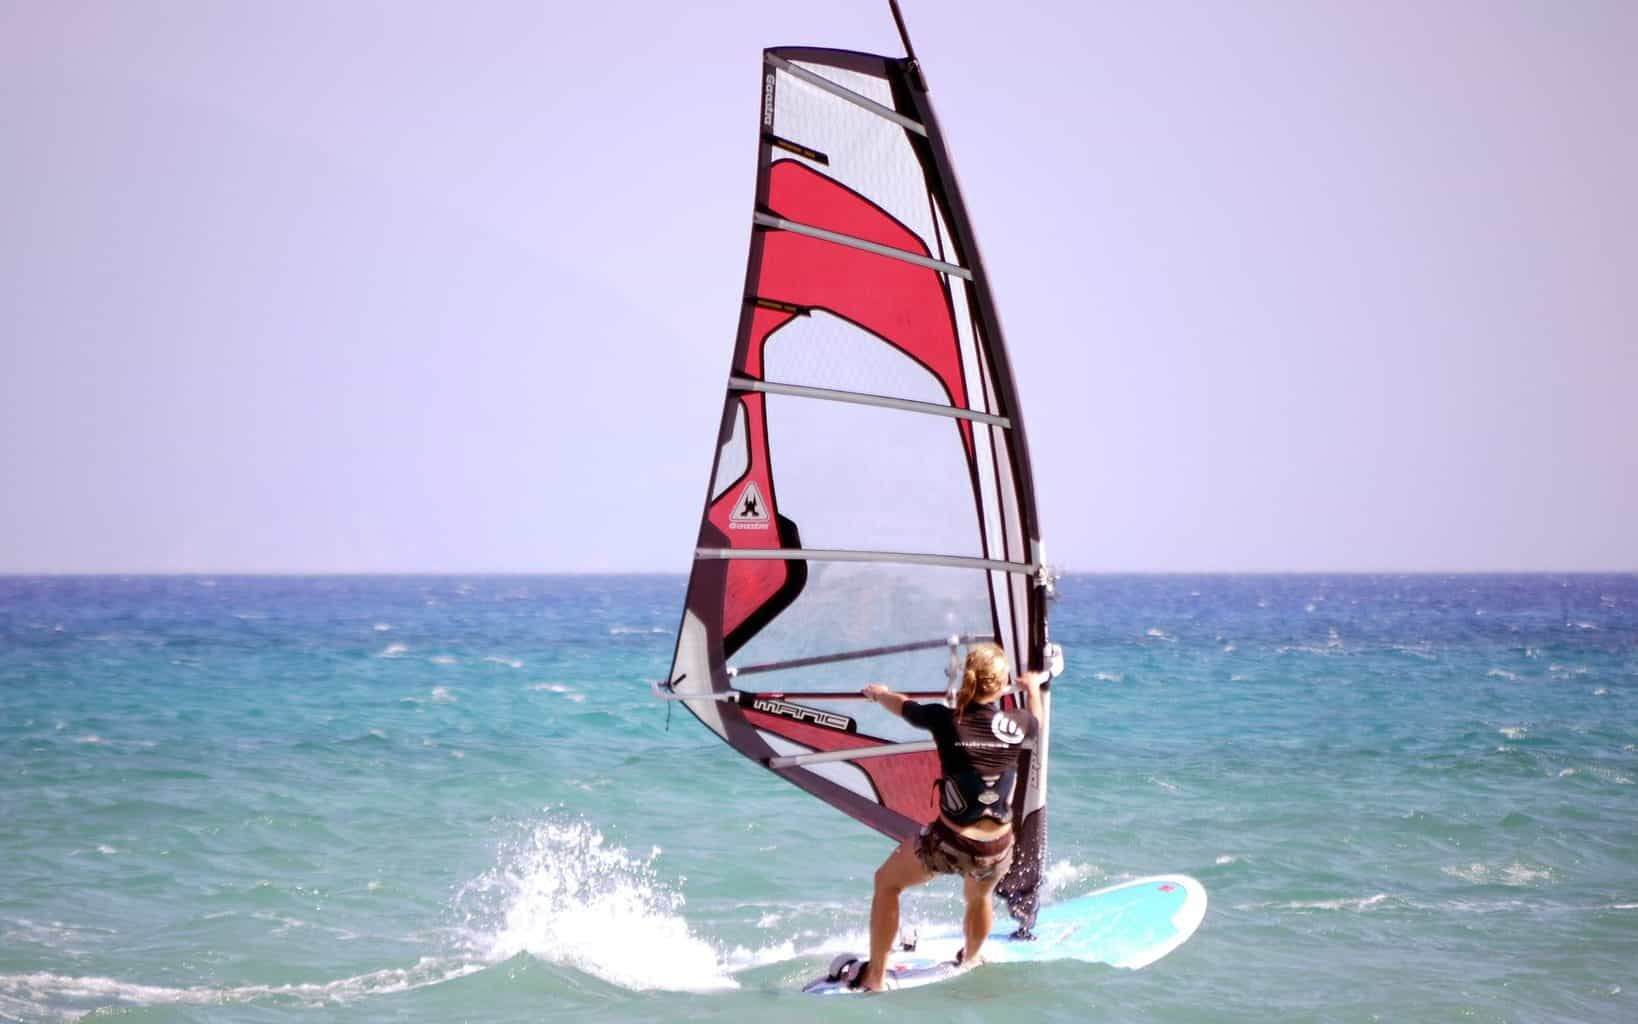 windsurfing beginner questions